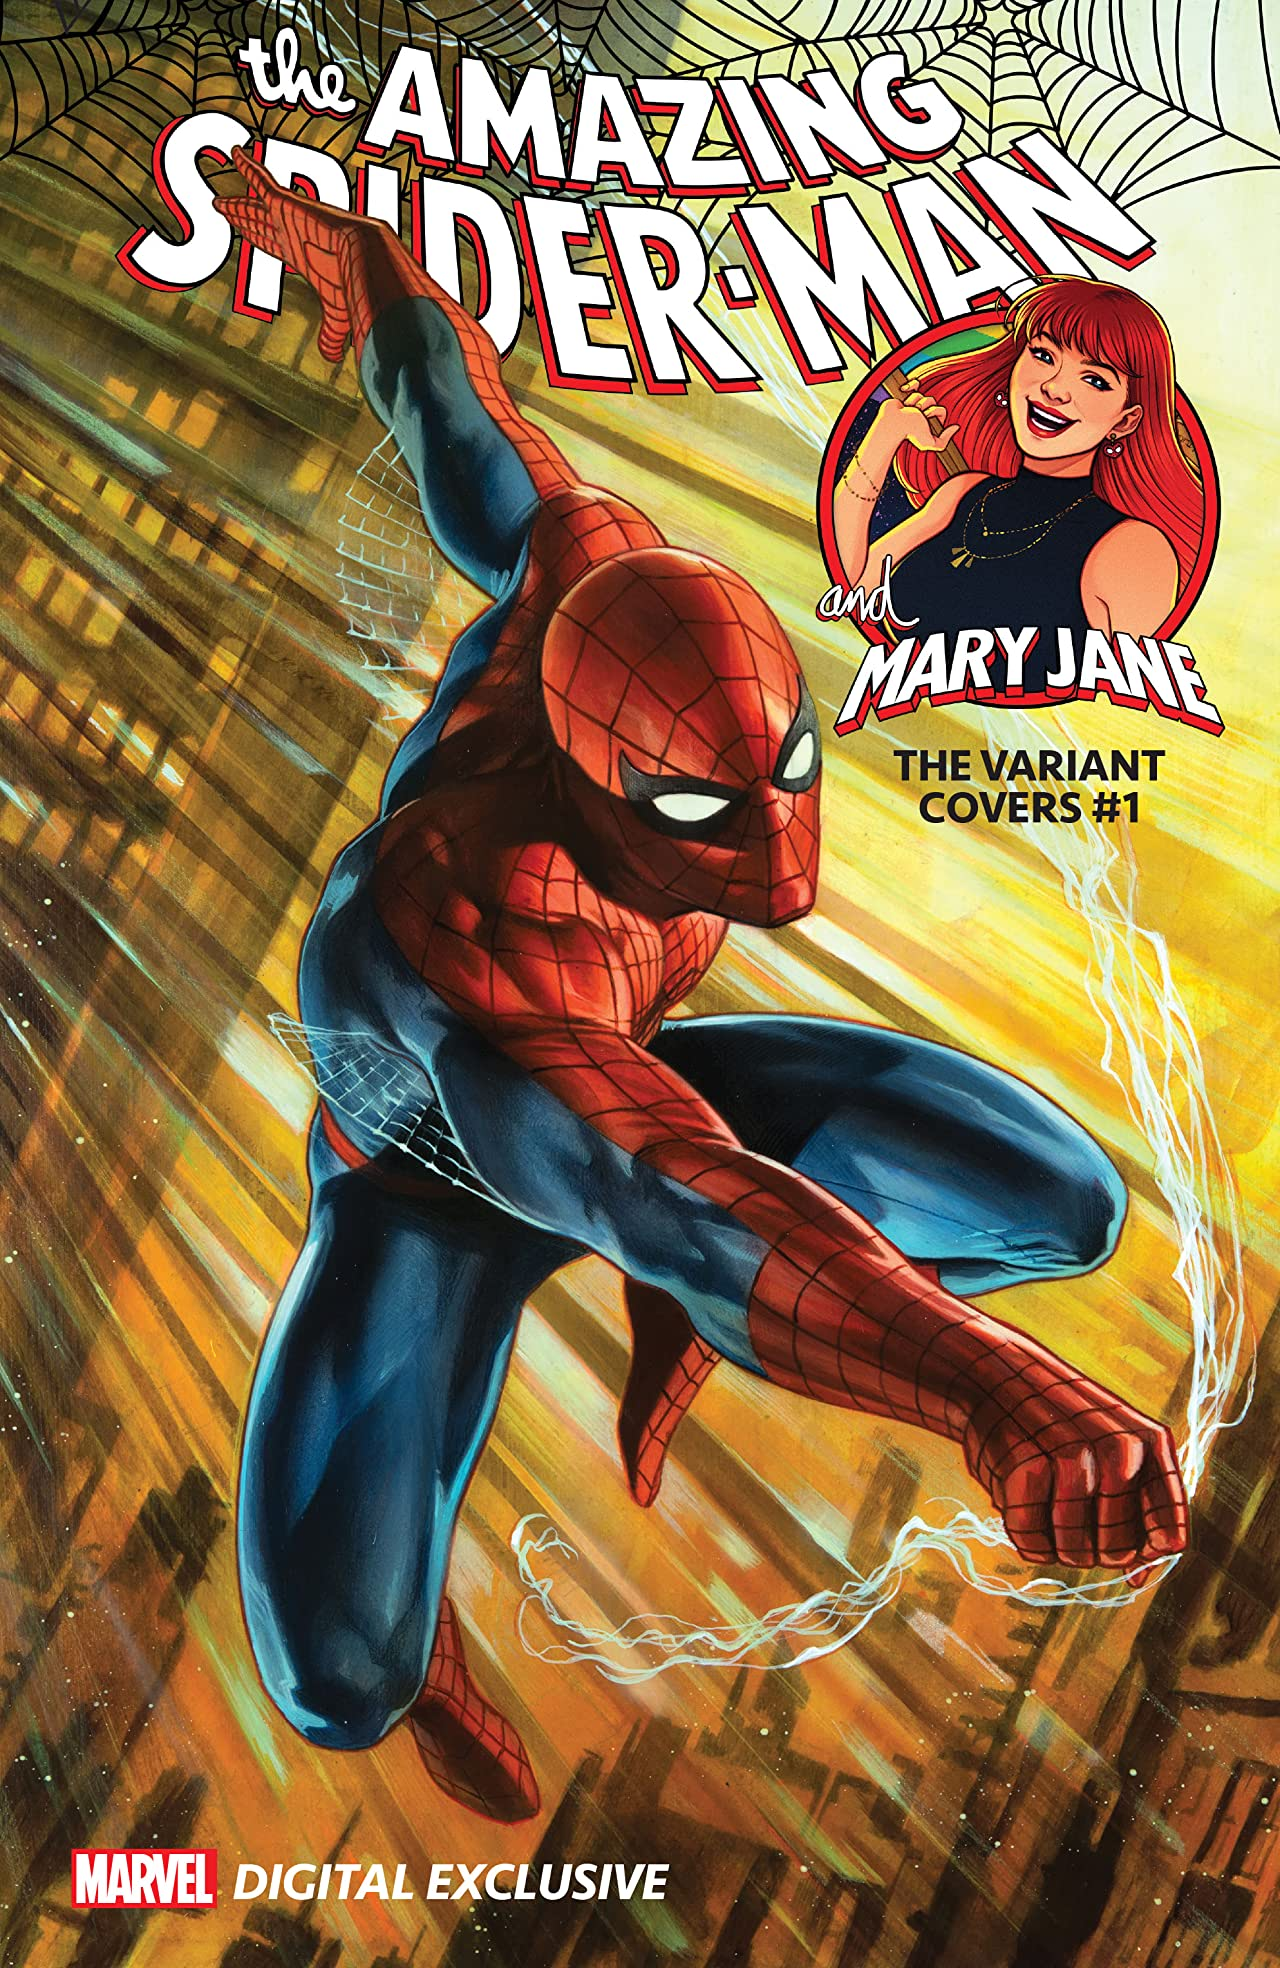 Amazing Spider-Man & Mary Jane: The Variant Covers #1